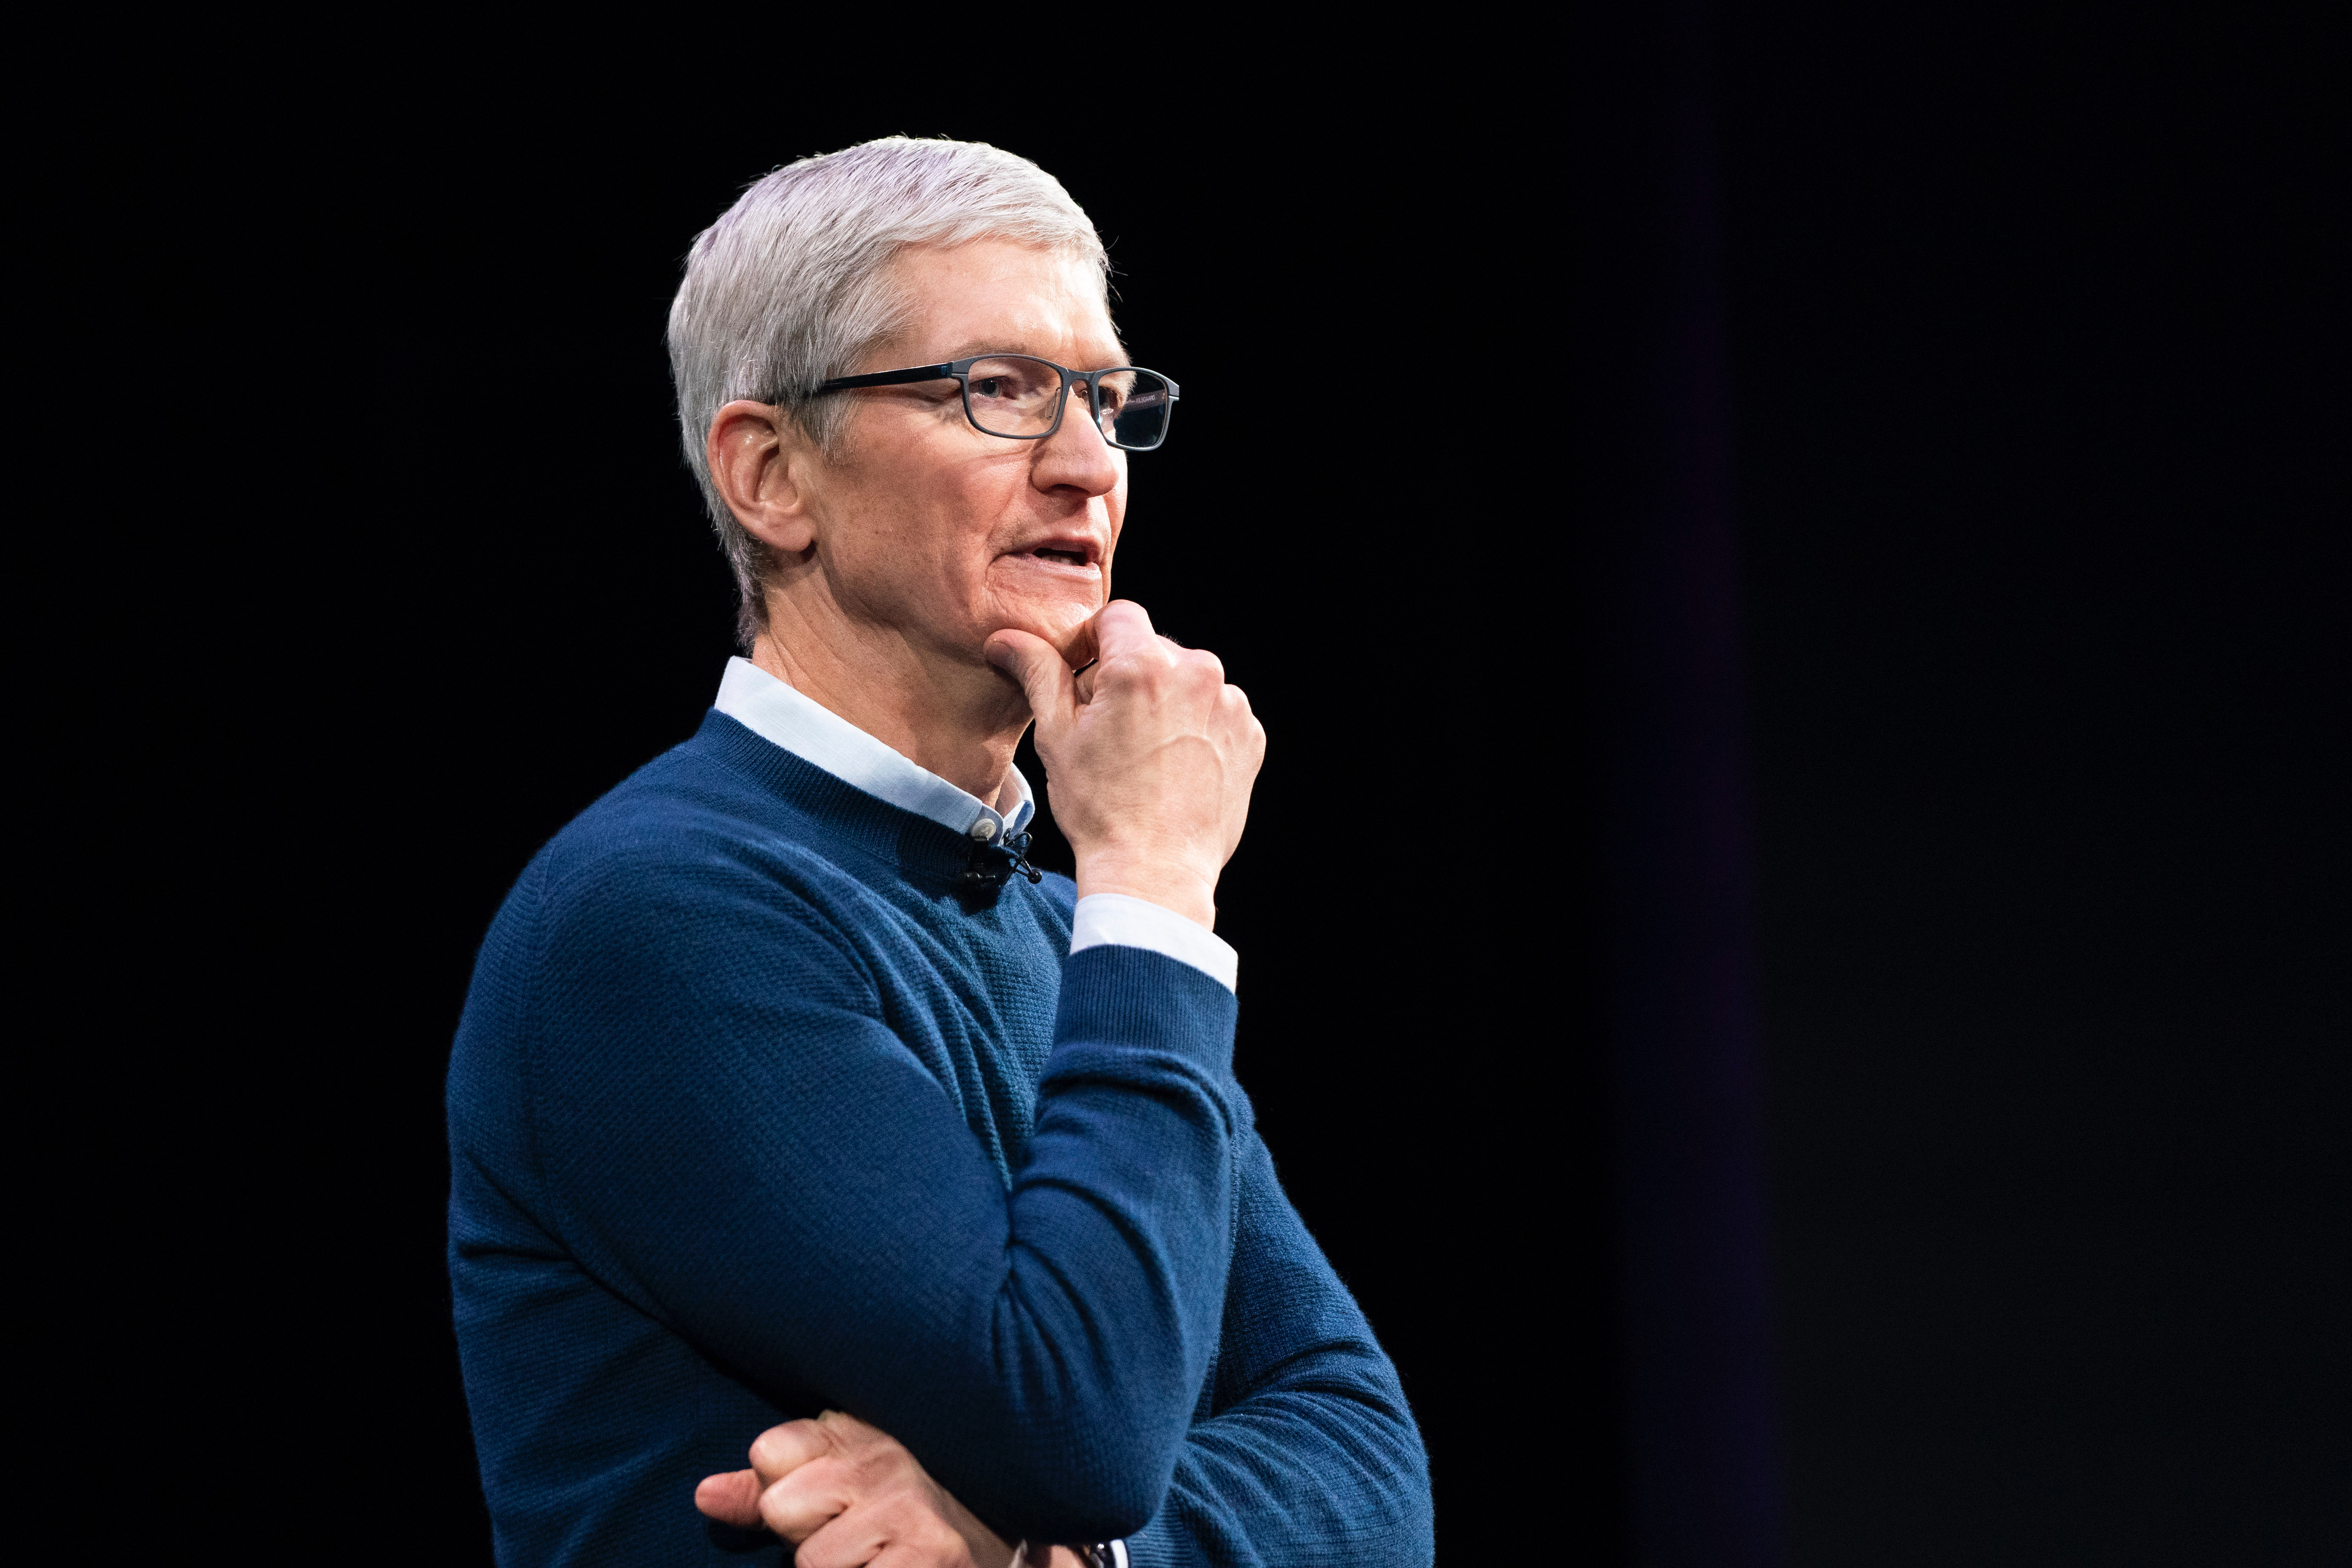 Apple CEO Tim Cook will join the TIME 100 Summit on April 23, 2019 in New York City to discuss leadership and innovation.